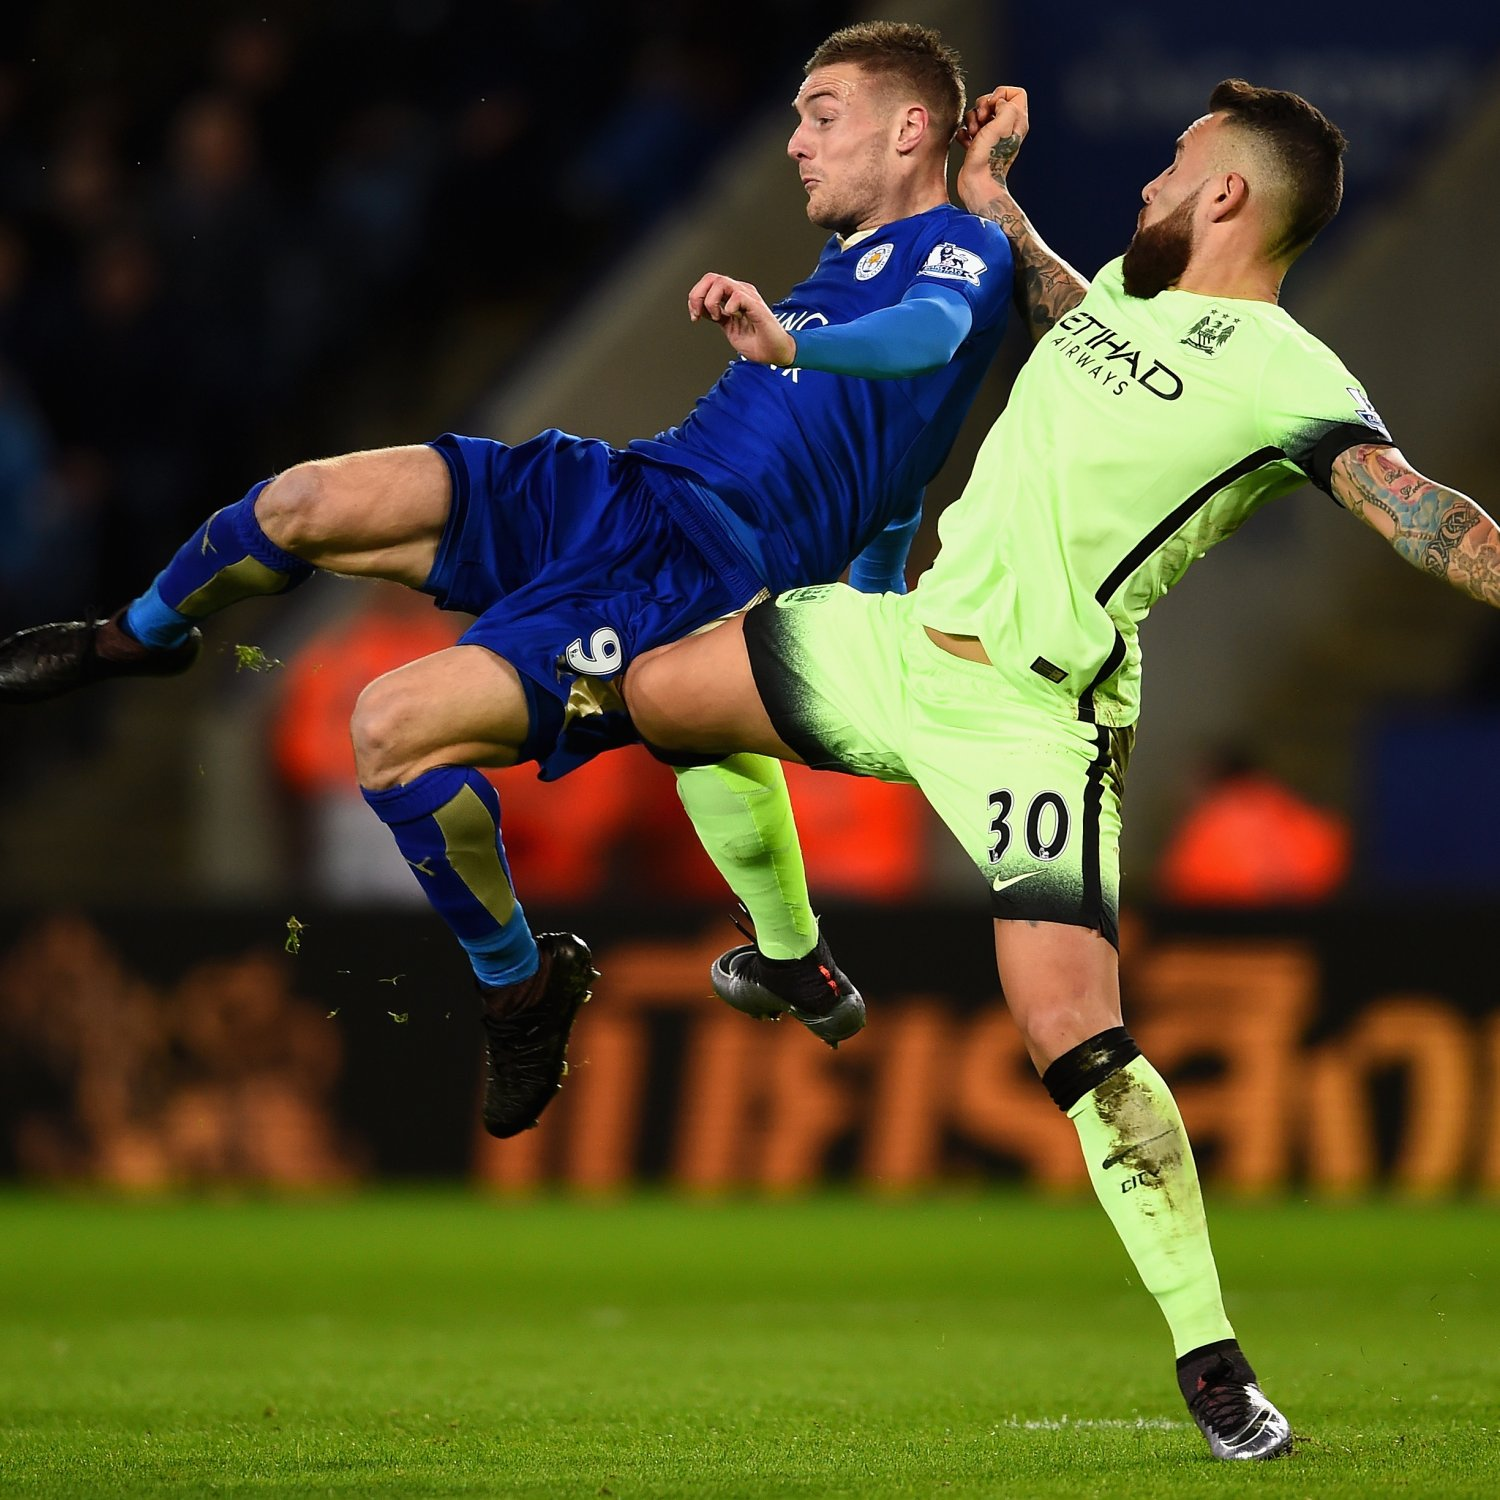 Psg Vs Manchester City Live Score Highlights From: Manchester City Vs. Leicester: Live Score, Highlights From